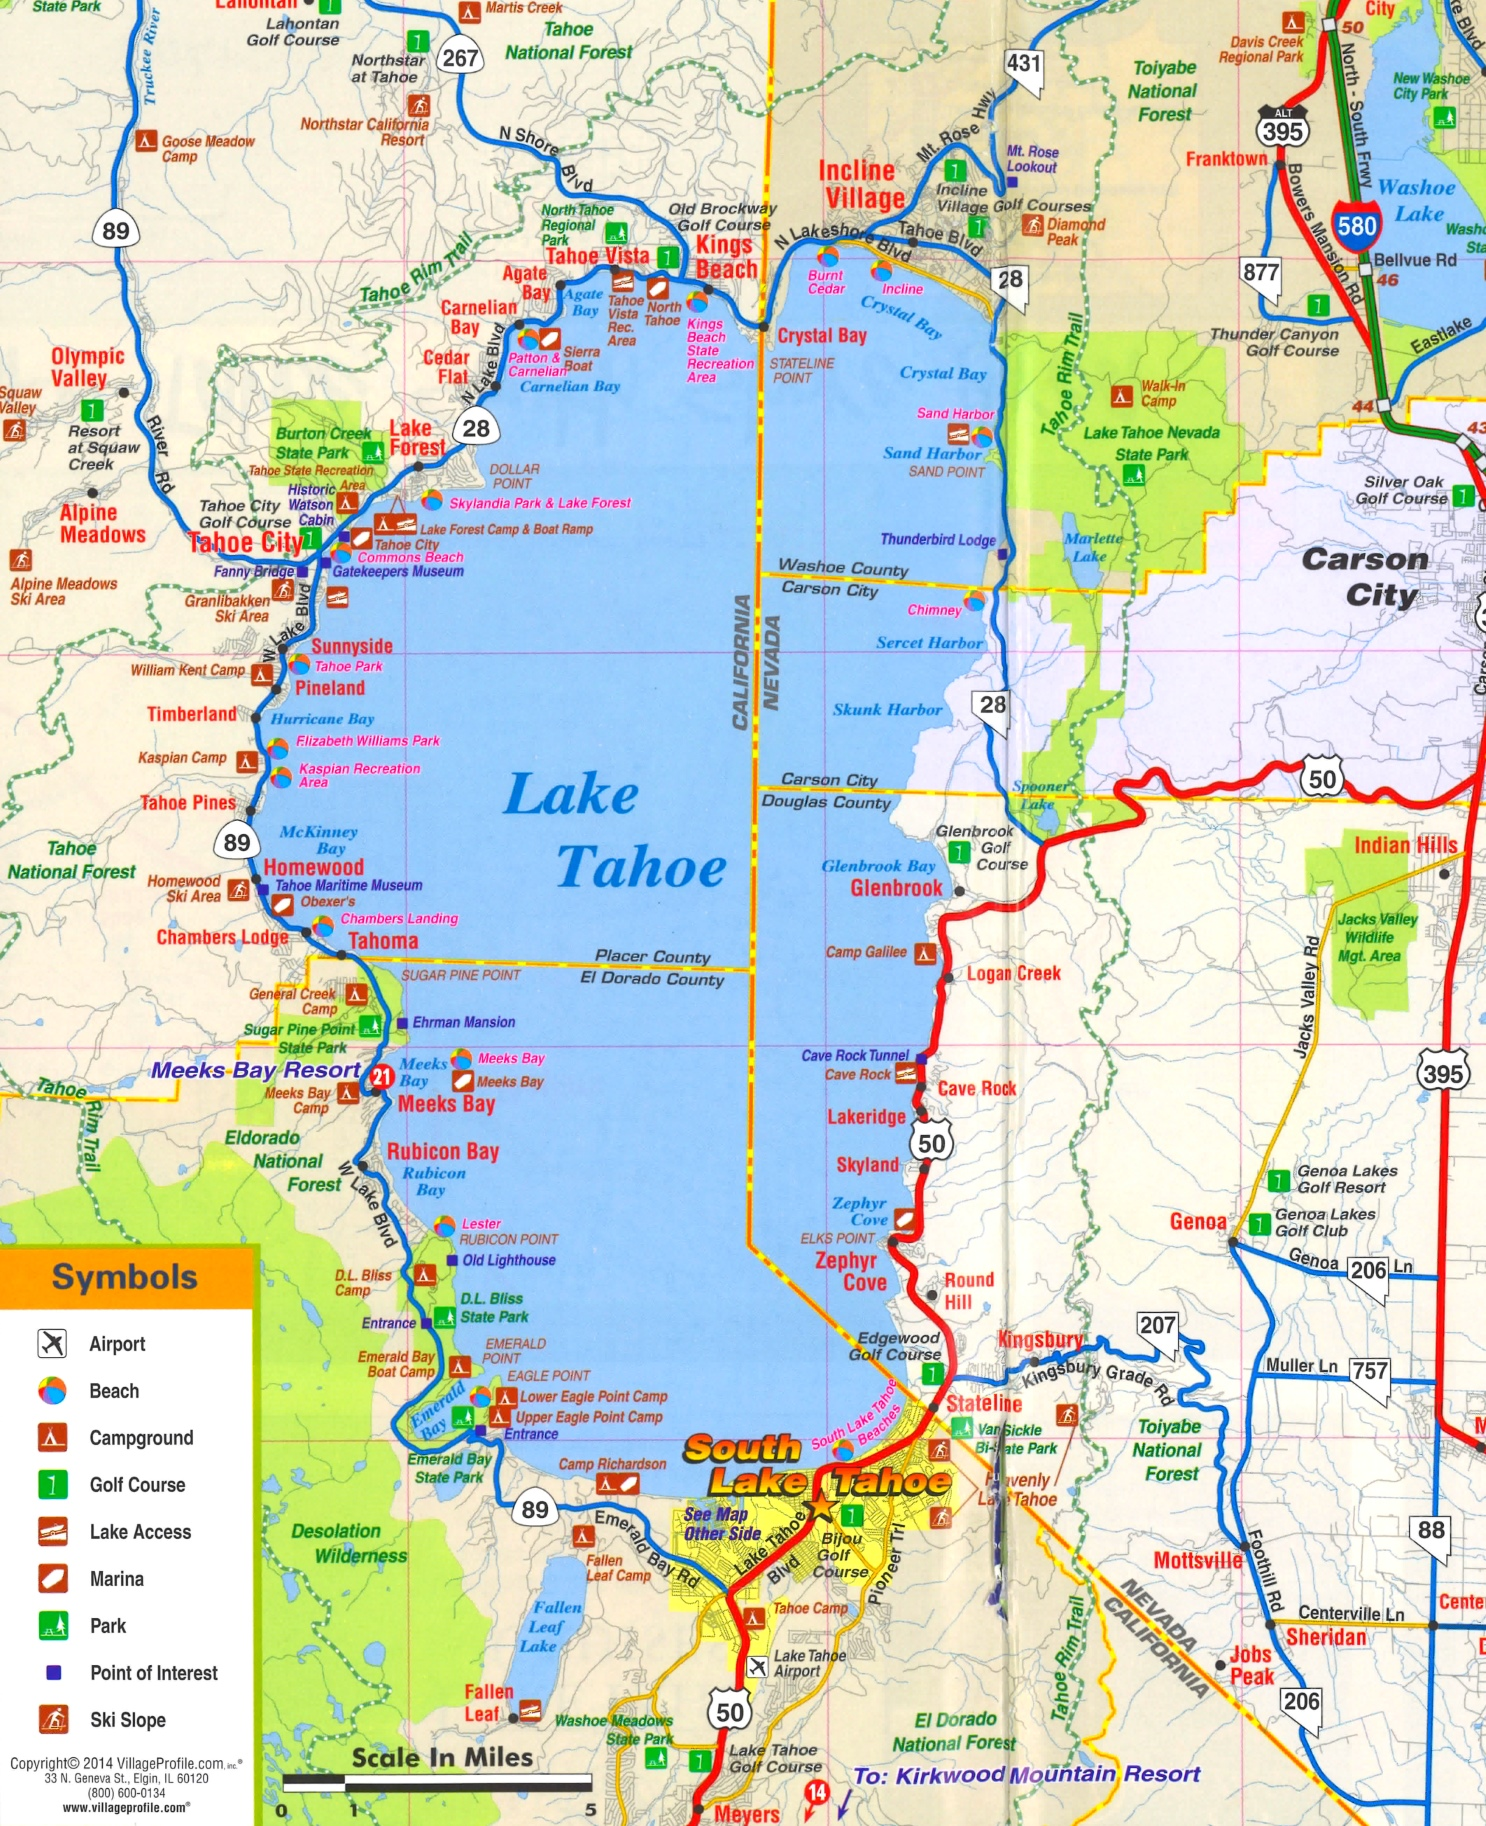 lake tahoe on a map Lake Tahoe Tourist Attractions Map lake tahoe on a map